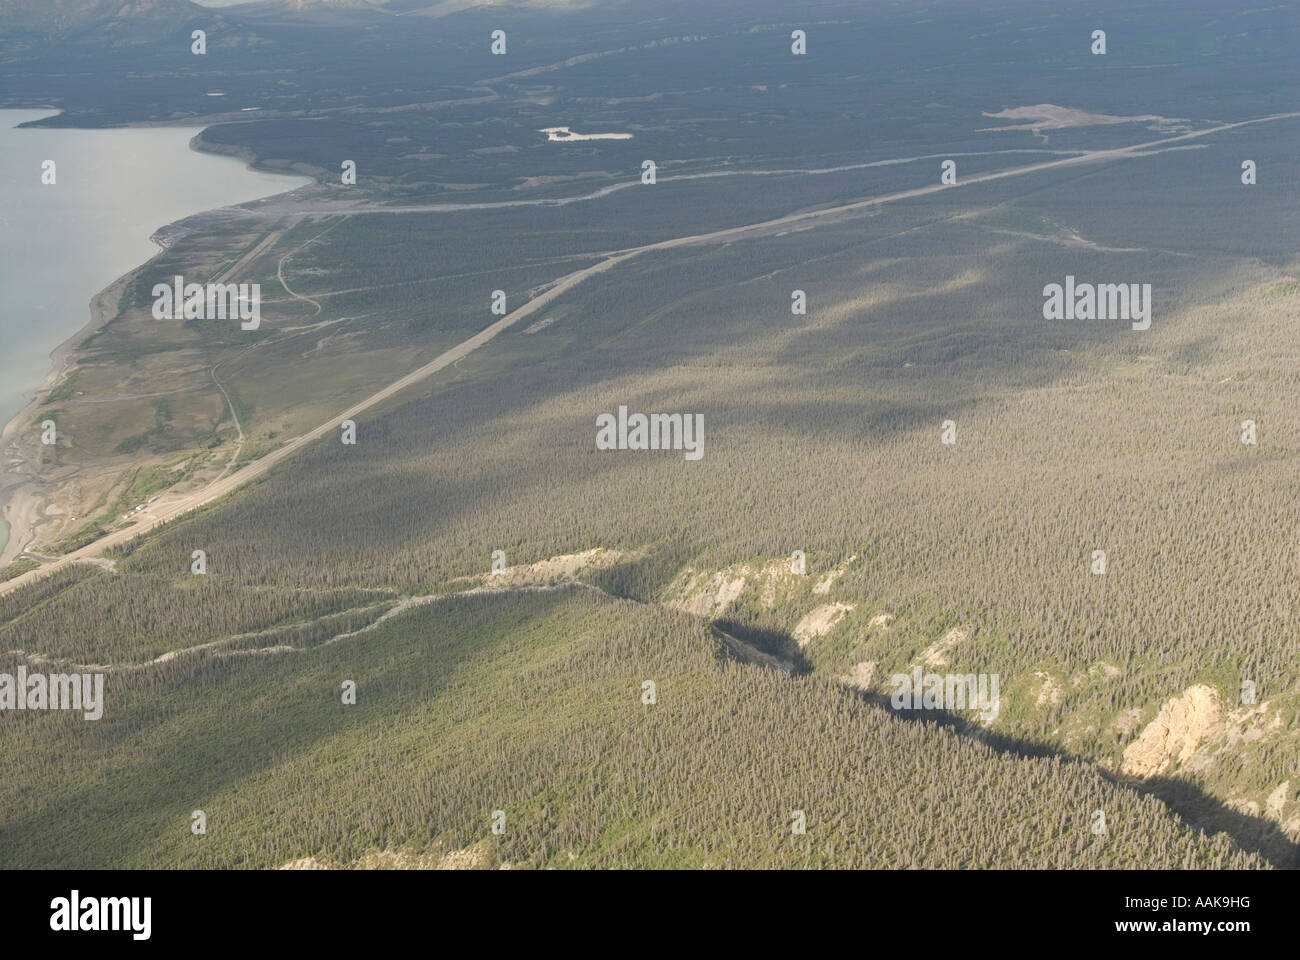 Dead forest killed by mountain pine beetle near Klaune National Park in the Yukon Canada - Stock Image